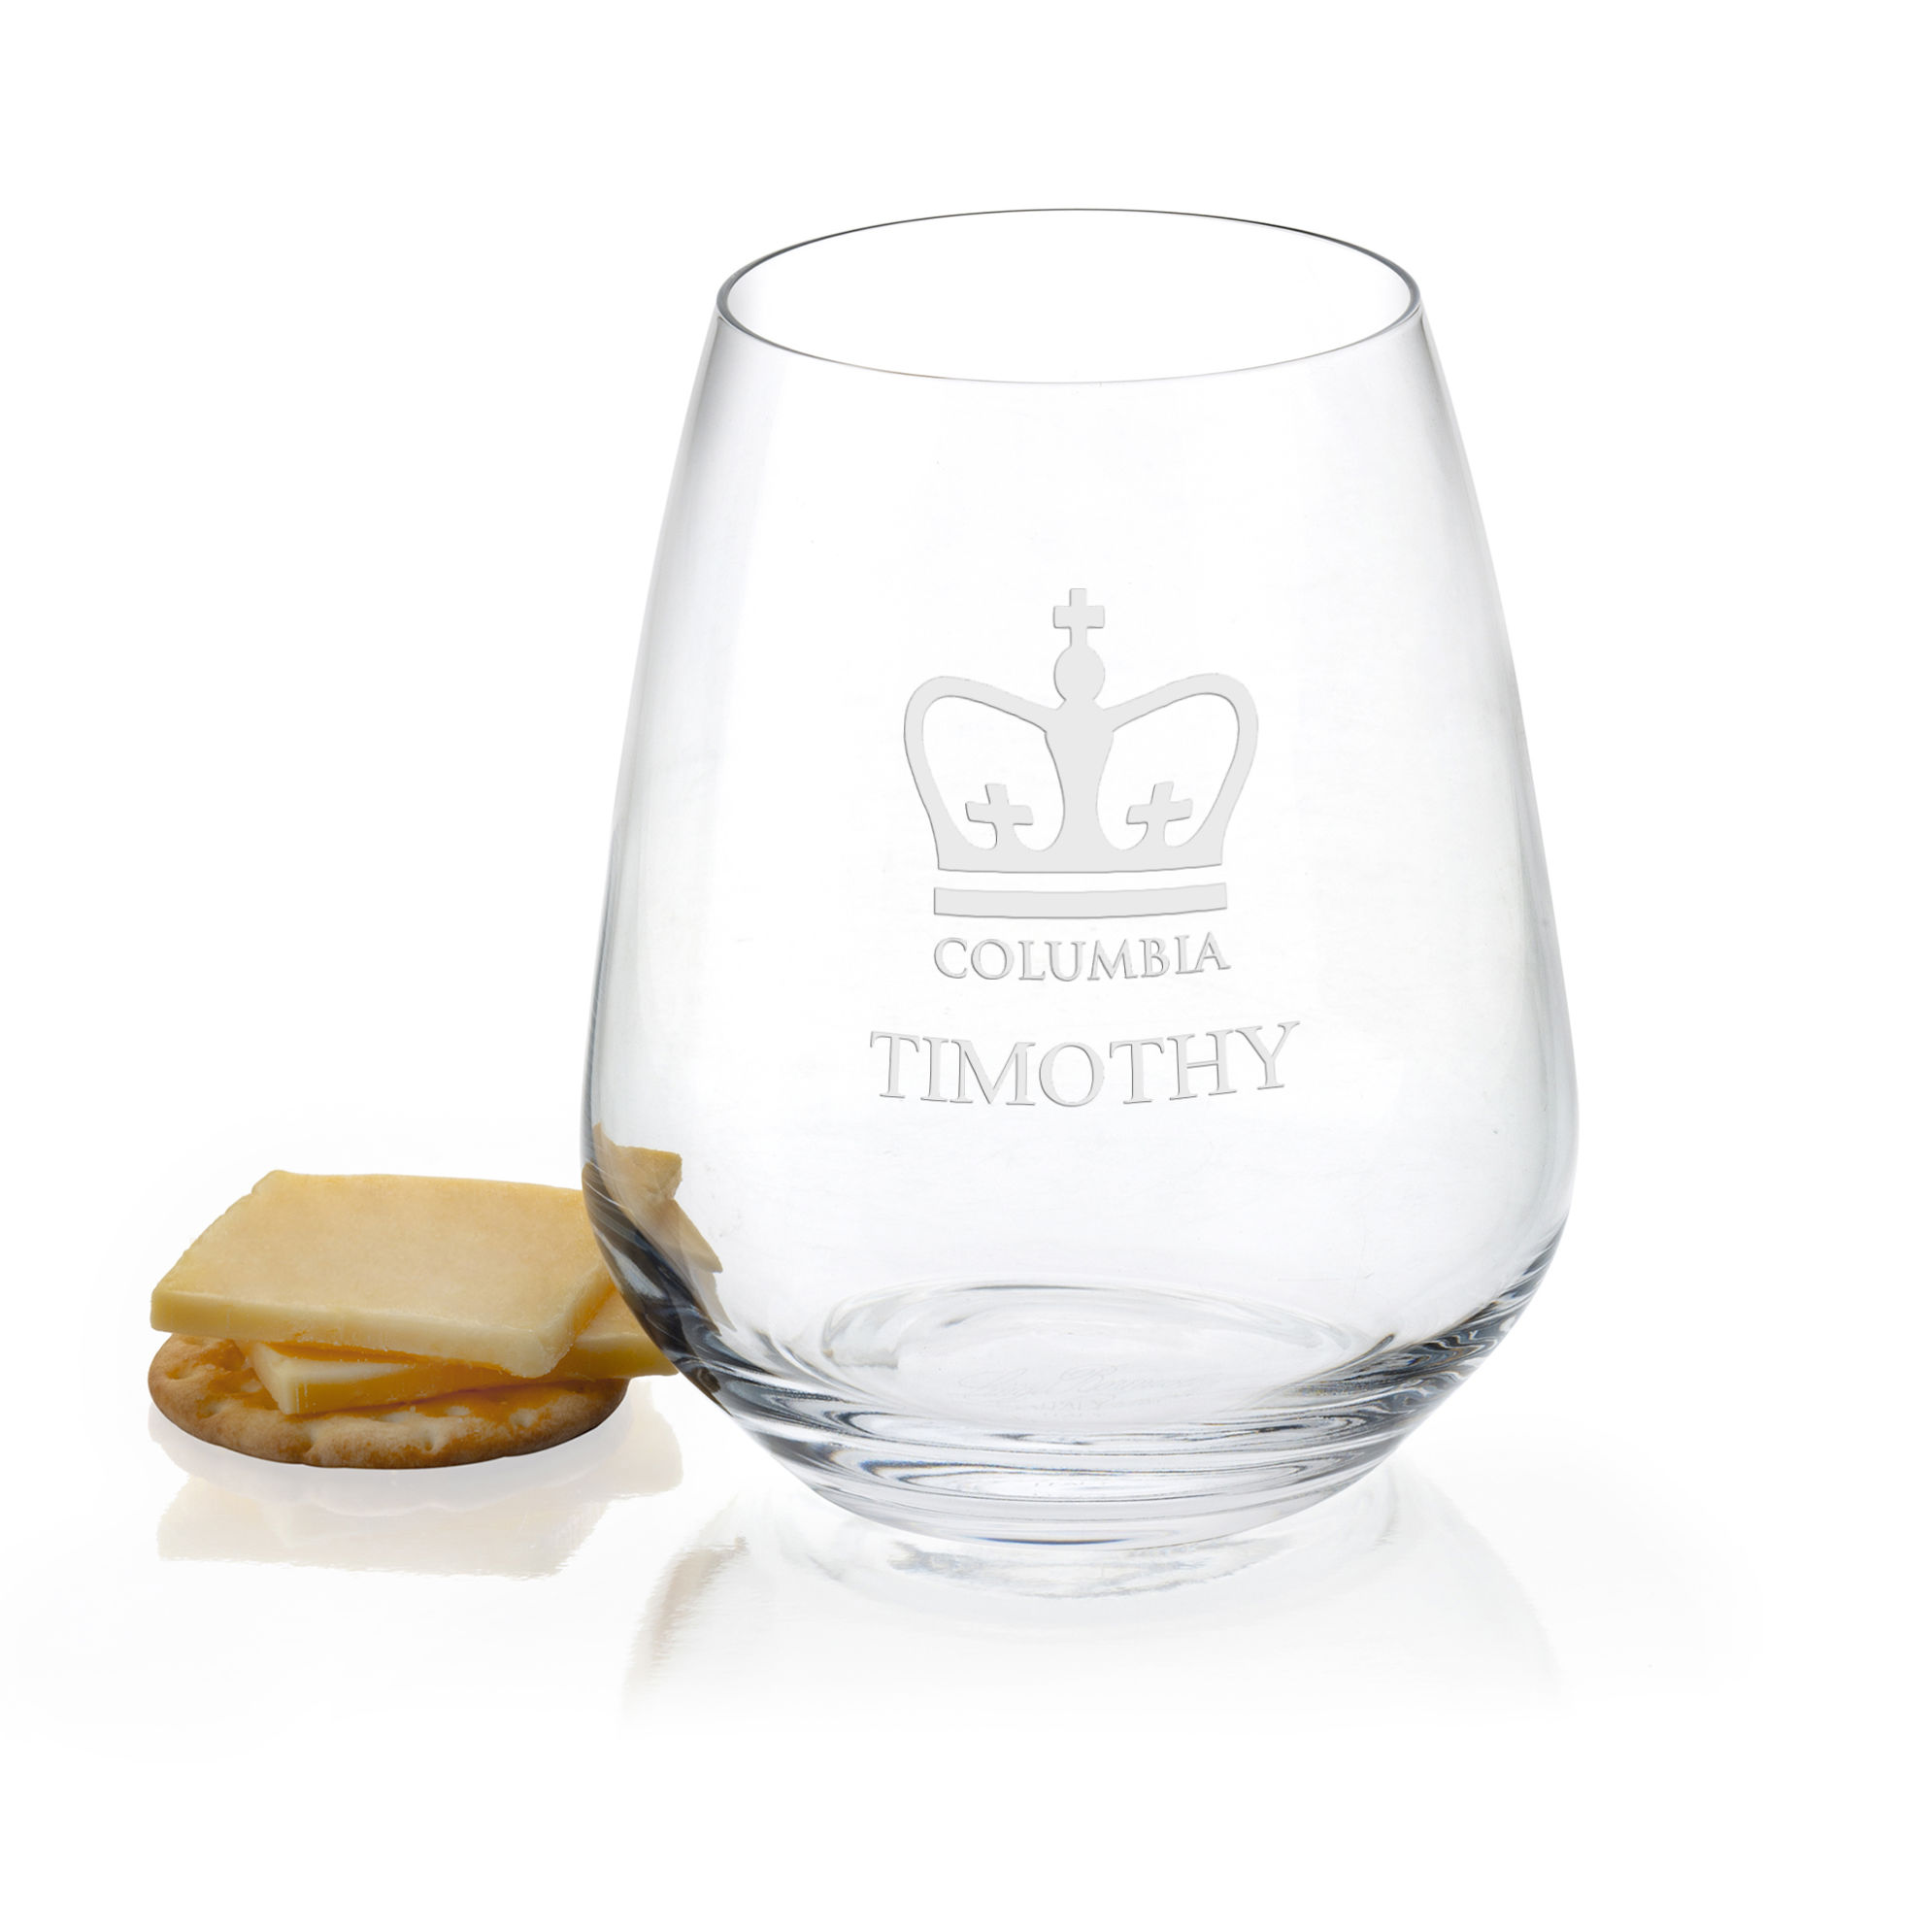 Columbia University Stemless Wine Glasses - Set of 4